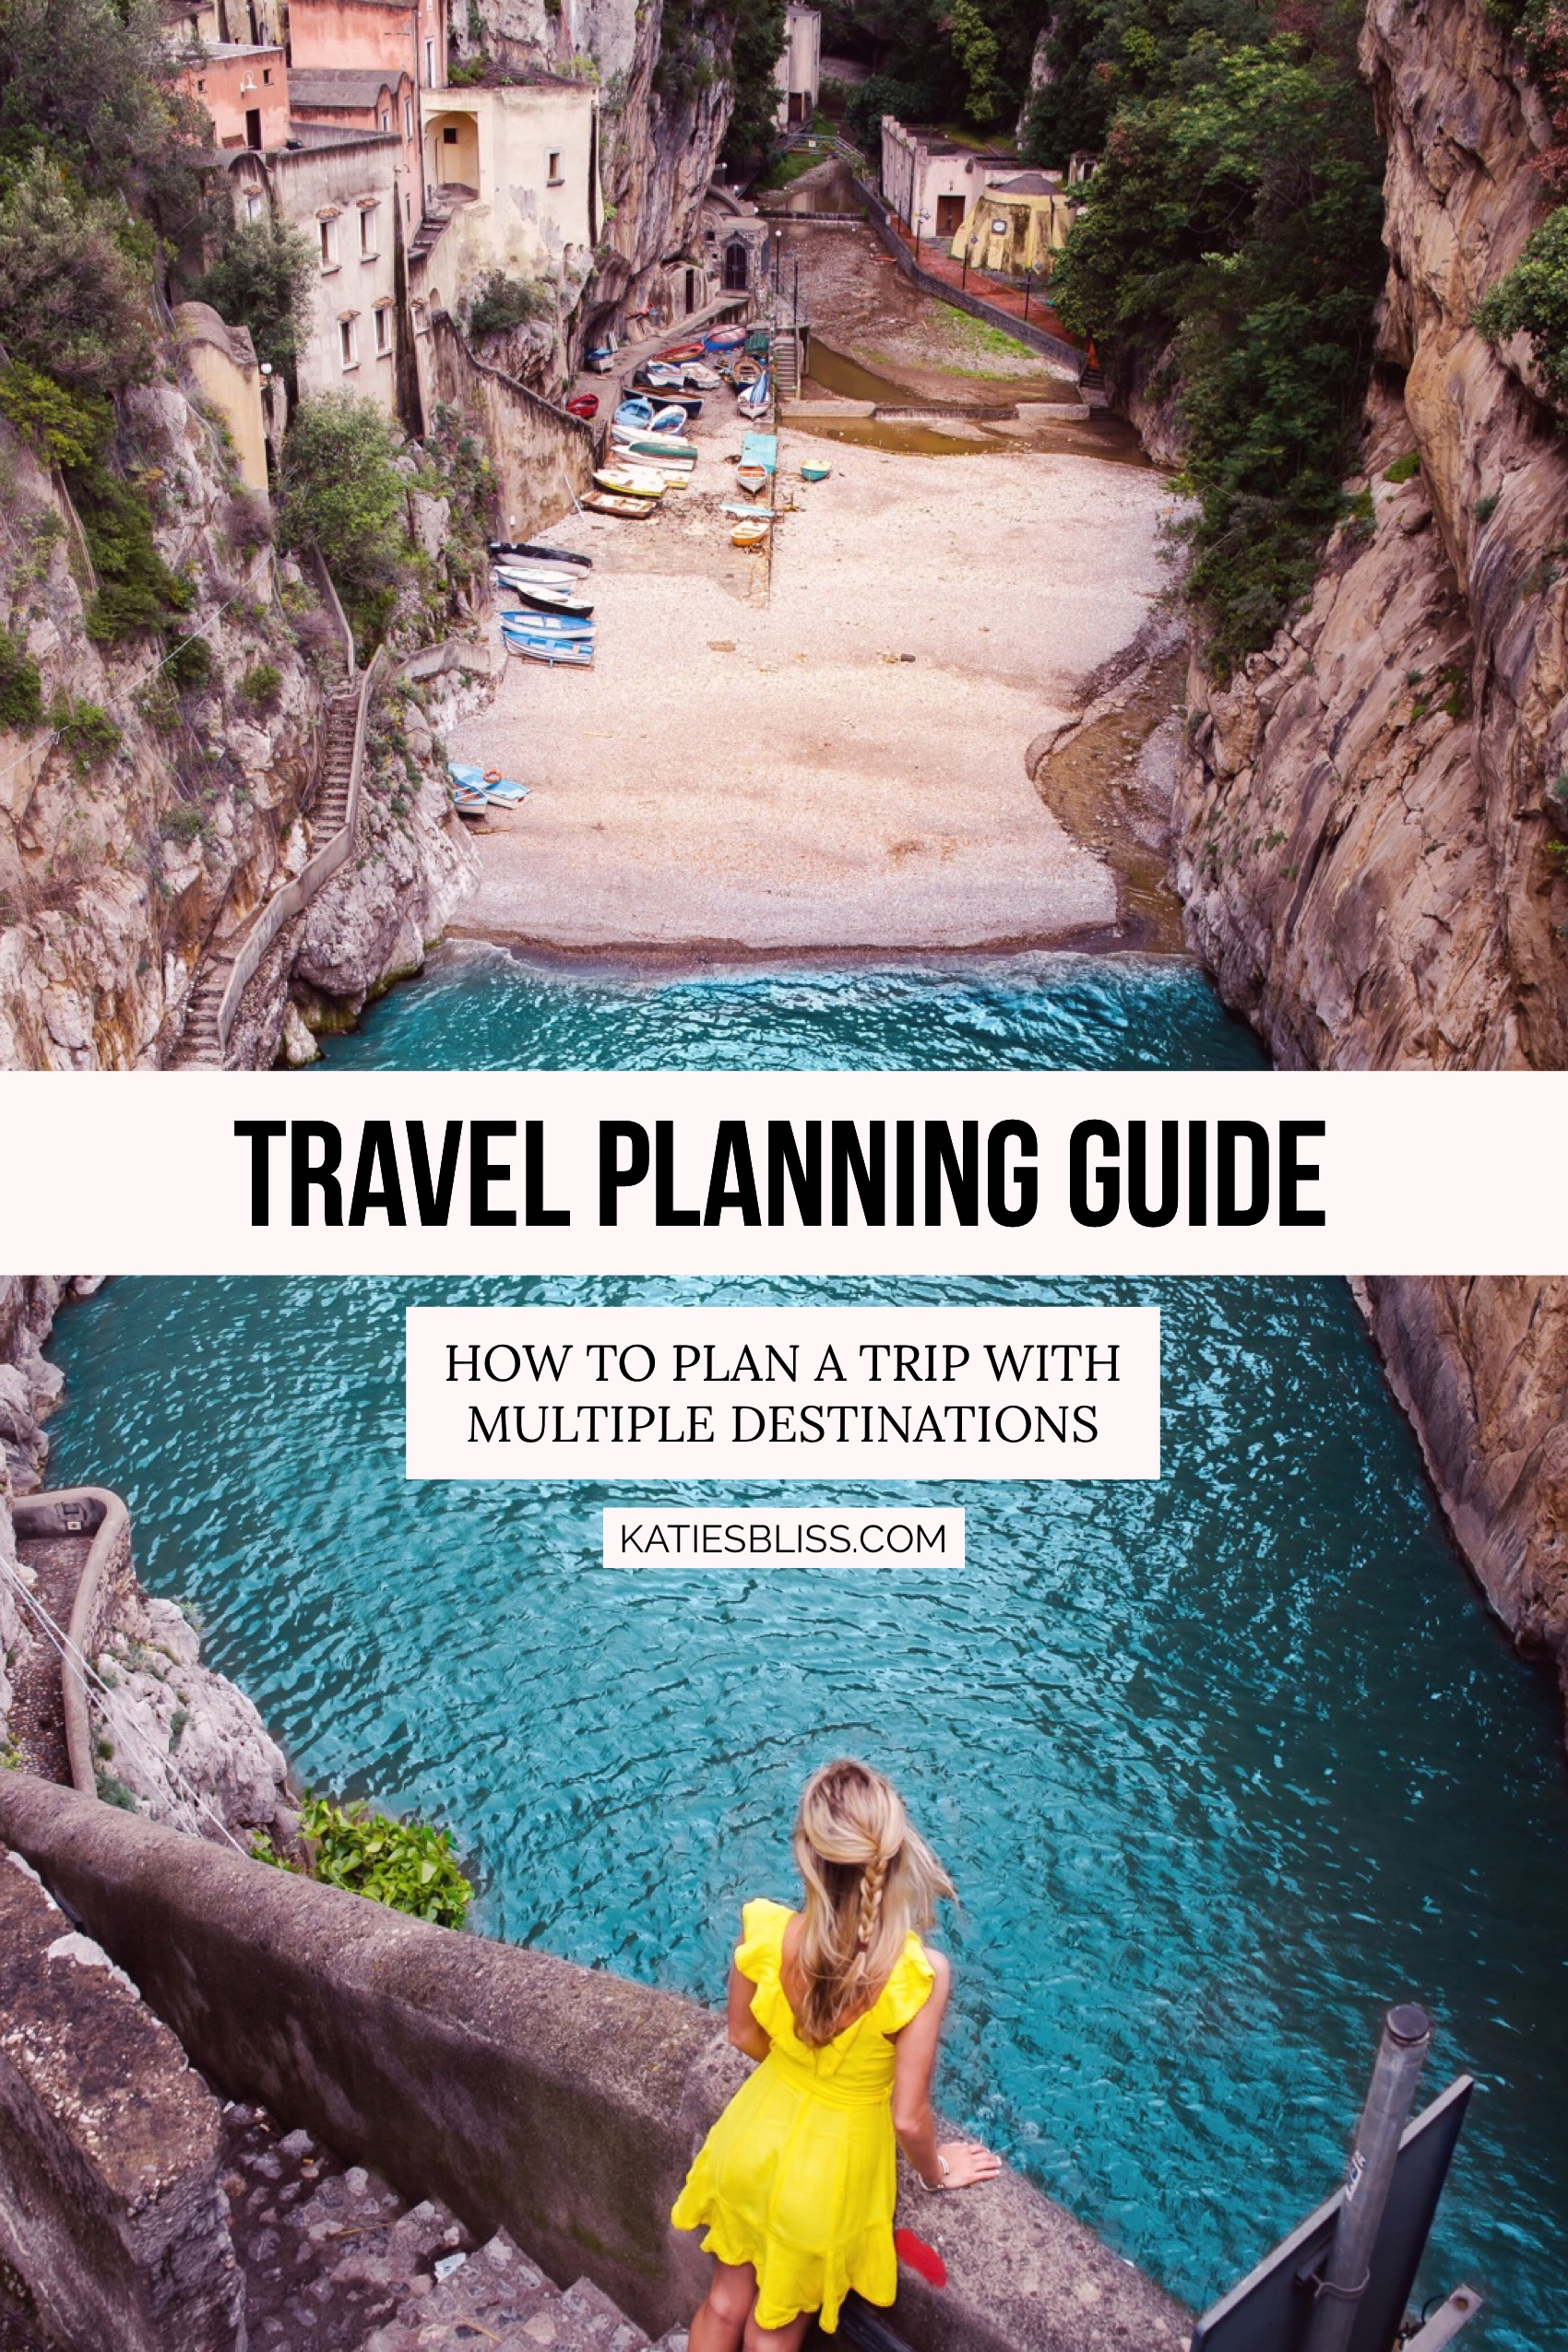 Trip Travel Travel Planning Guide How To Plan A Trip With Multiple